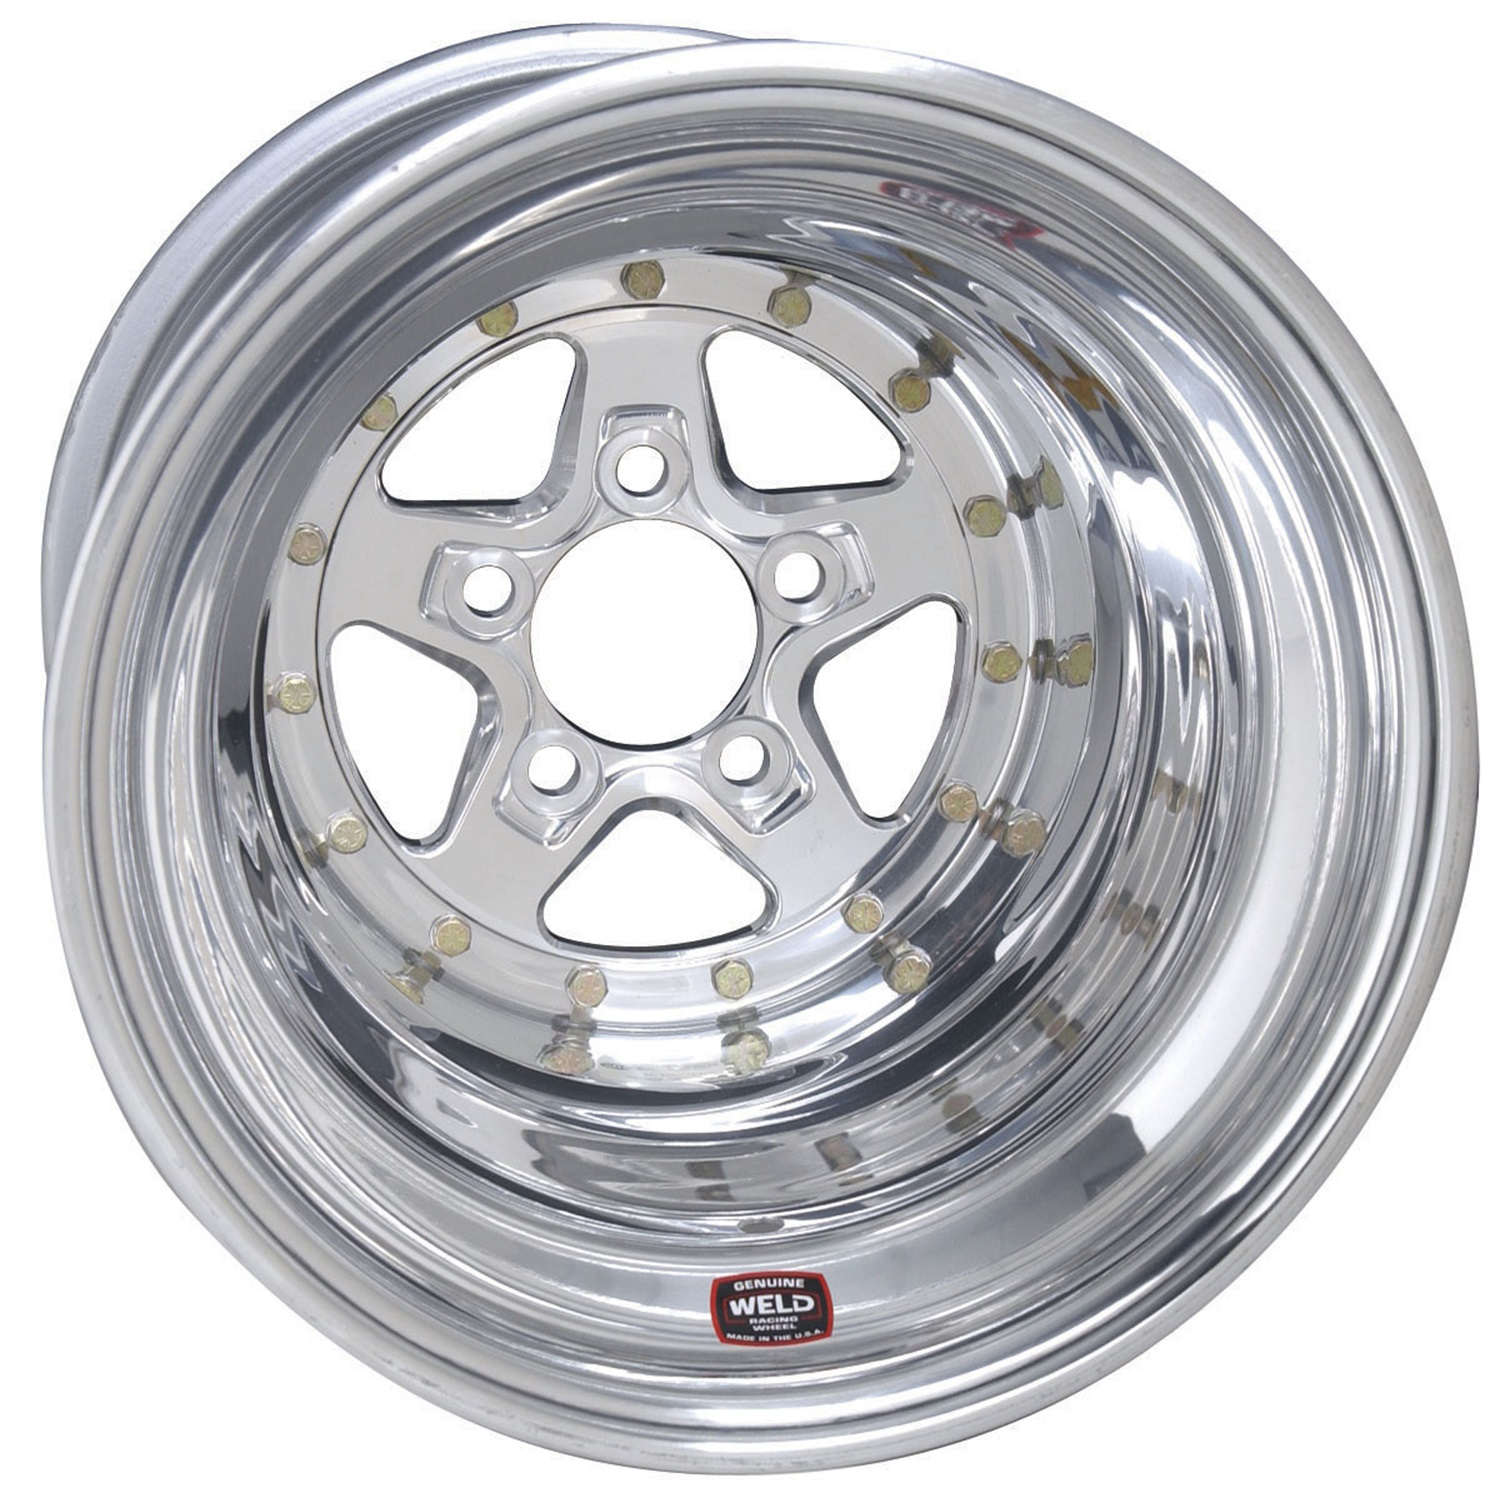 Weld Racing 88-514278 Weld Pro Drag Alumastar 2.0; Size 15x14 in.; Bolt Pattern 5x4.75 in.; -88.9 Offset; Back Spacing 4 in.; Polished Center; Polished Shell; Bore Diameter 3.18in./80.772mm.;